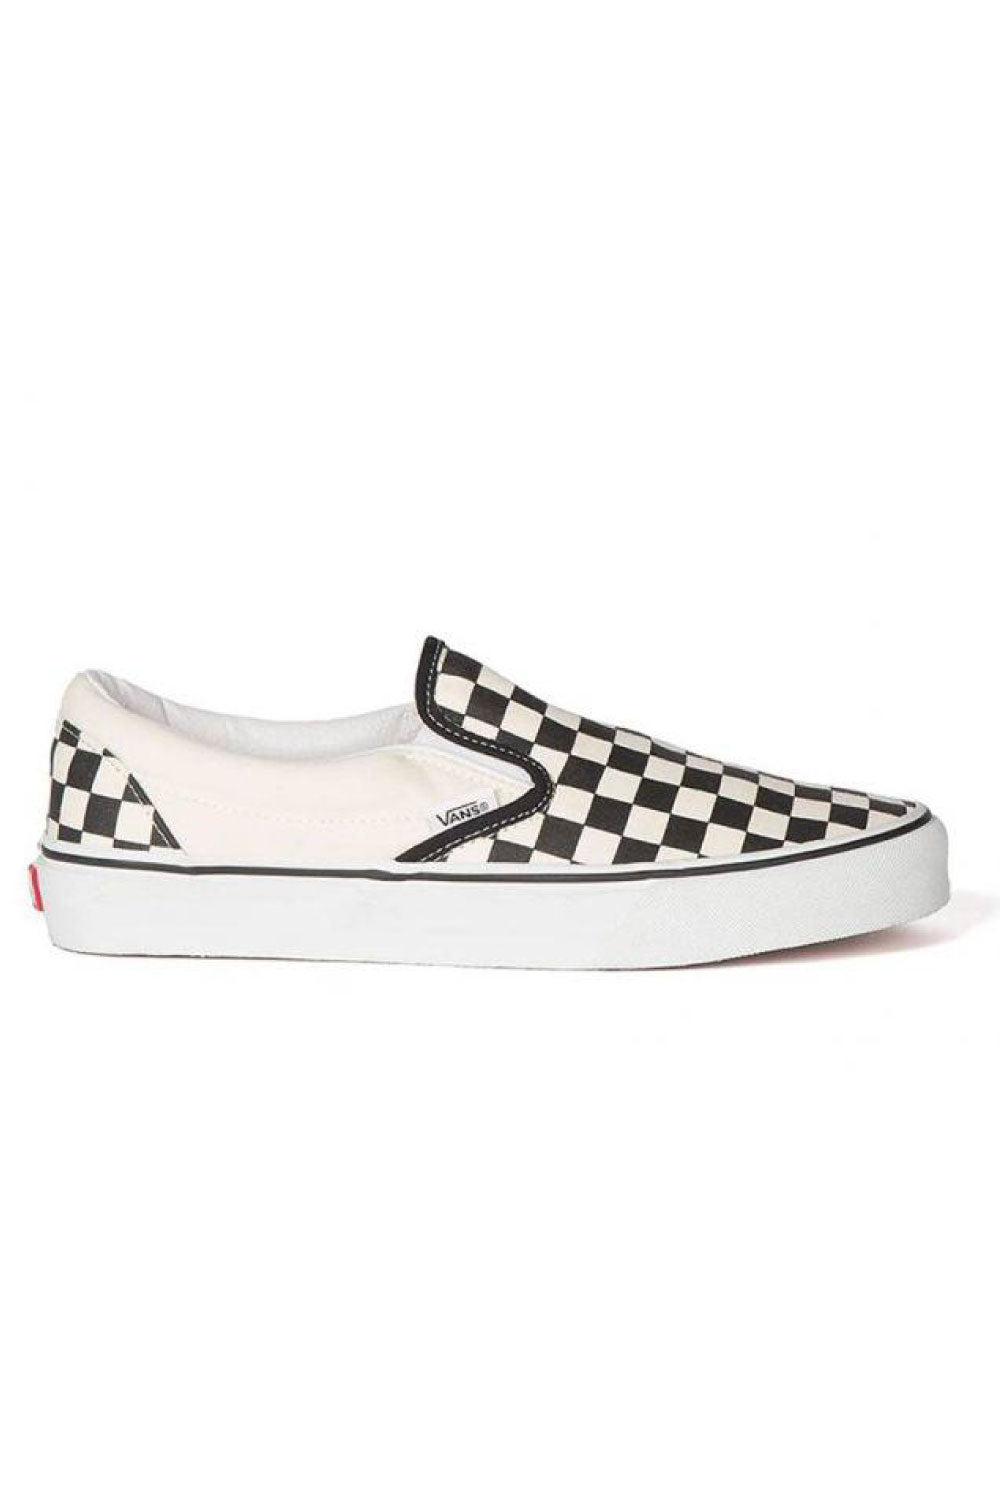 CHECKERBOARD BLACK/OFF WHITE